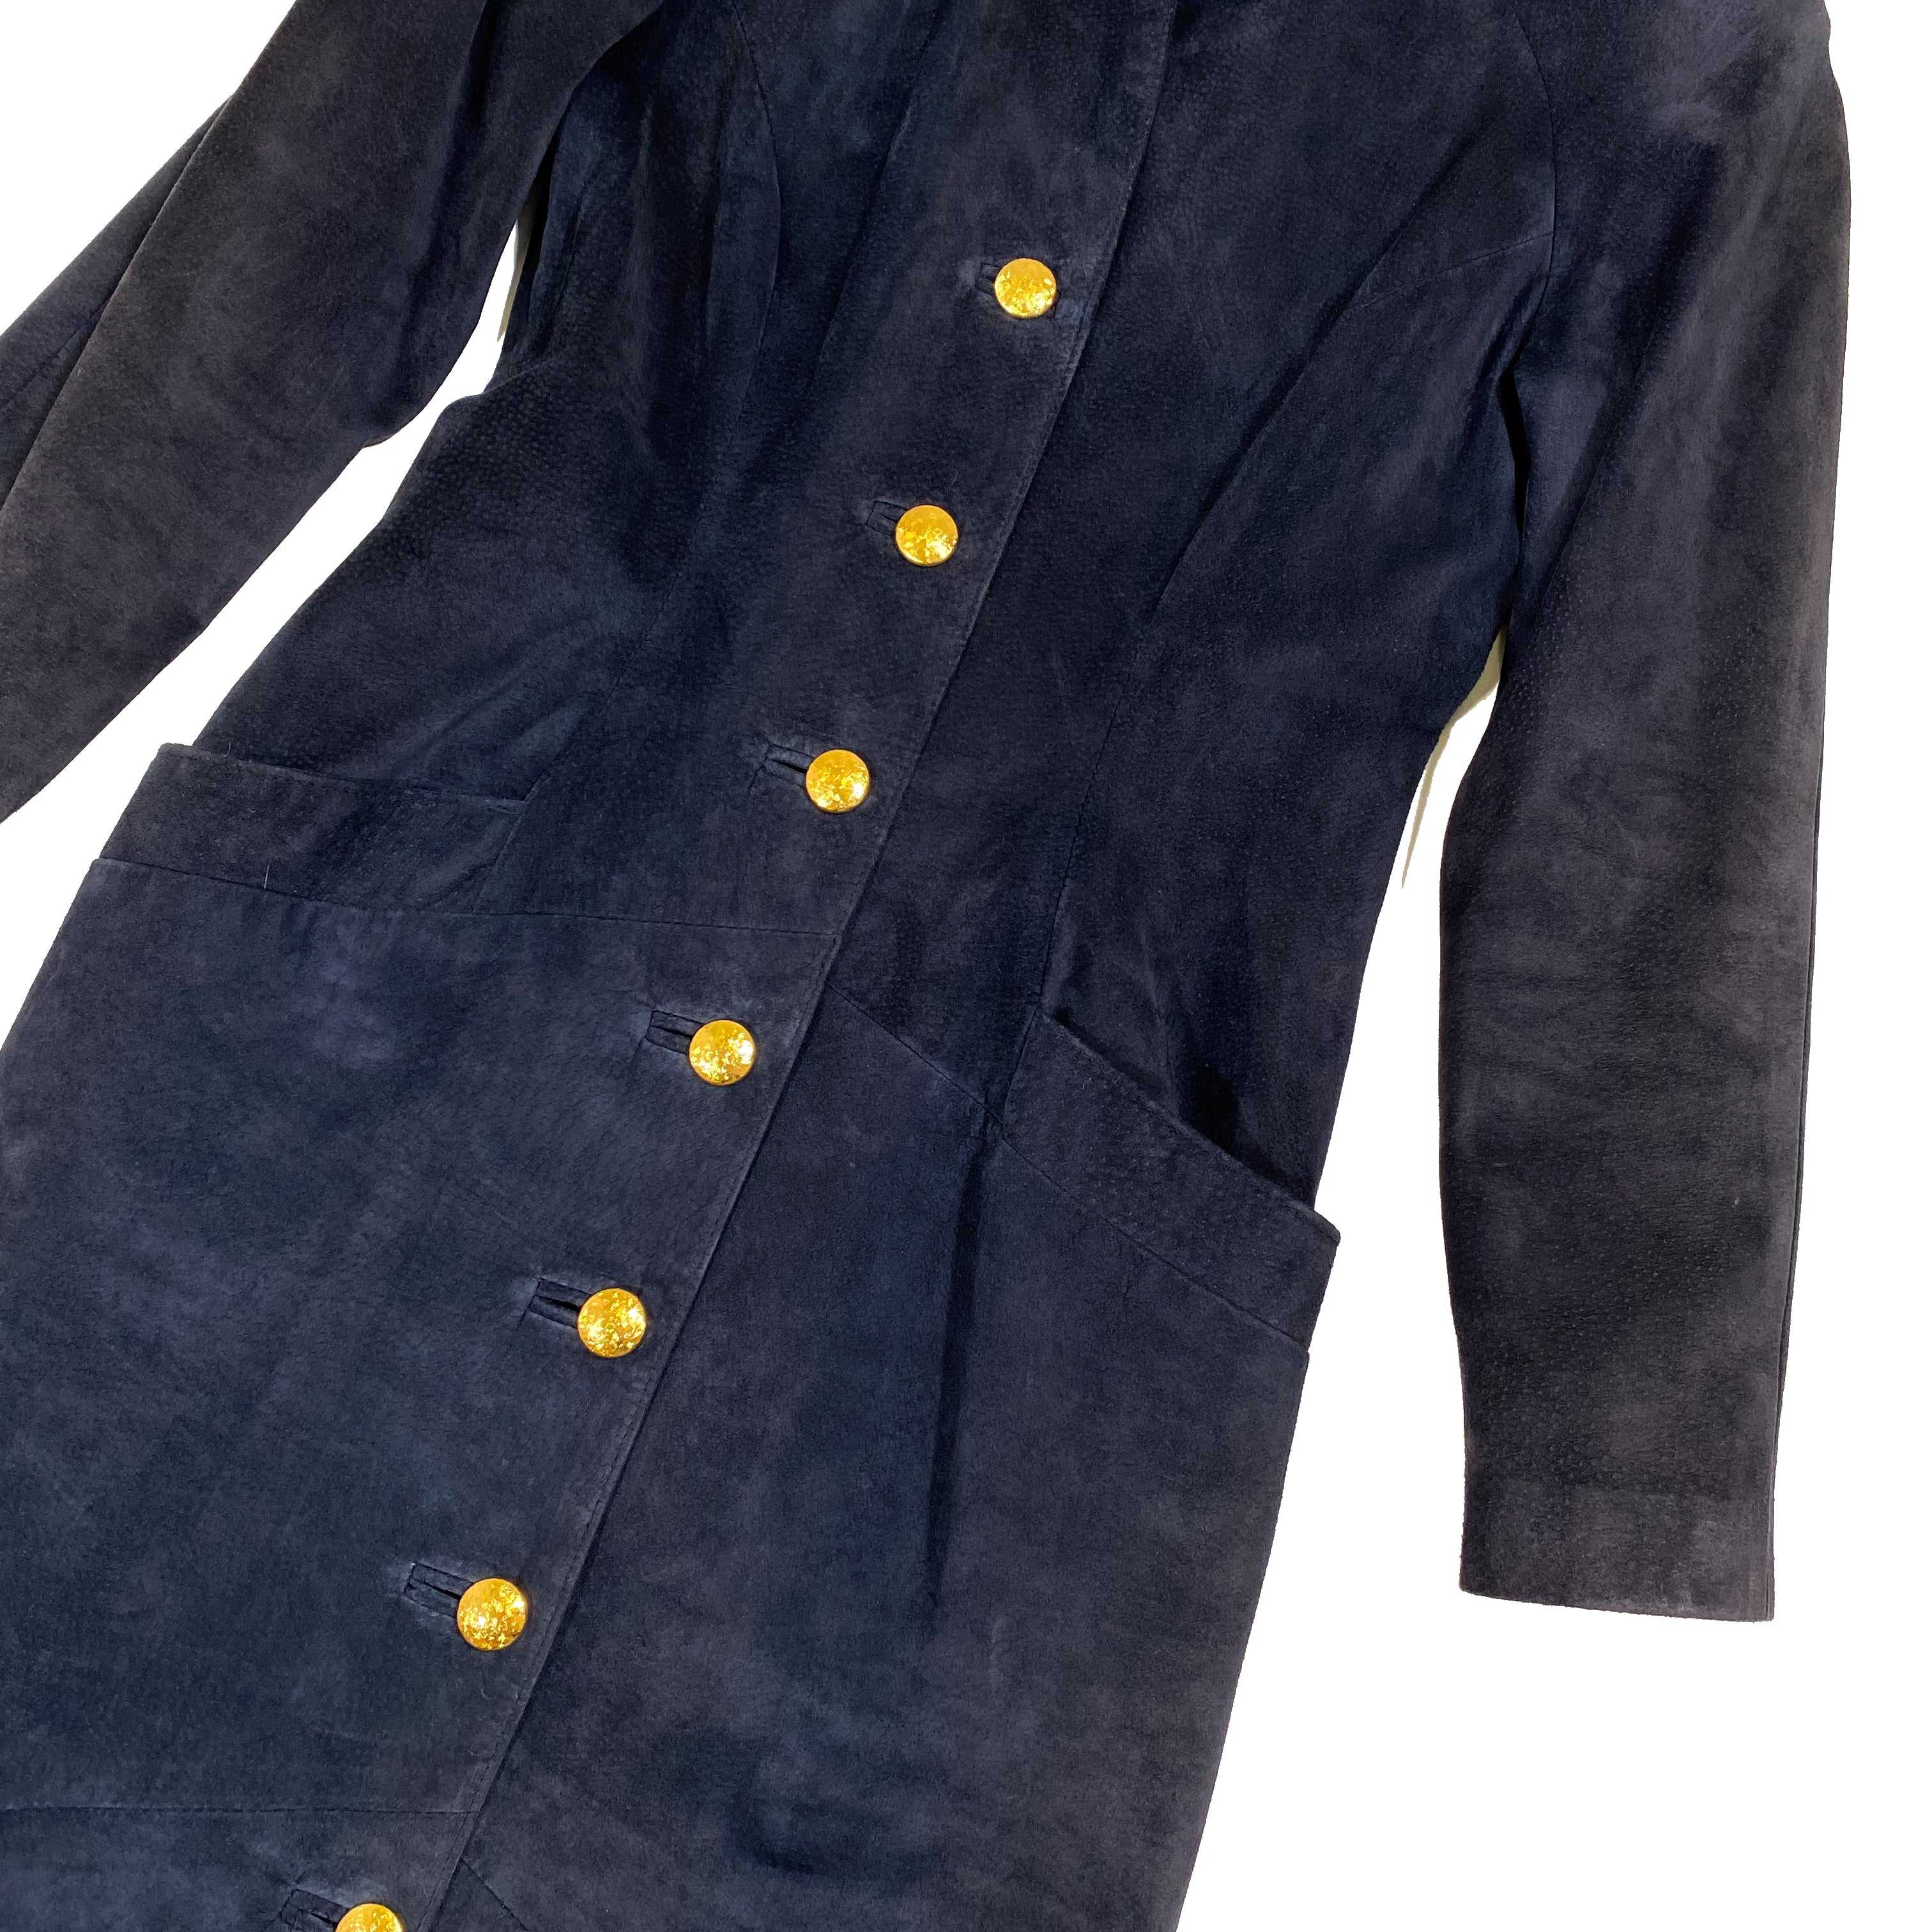 Second Room Vintage Clothing. Vintage navy blue Danier suede long coat, with rounded dolman sleeves, and shoulder pads. Fully lined, fitted silhouette, two front pockets and gorgeous gold tone buttons. Free Shipping on all orders within North America.